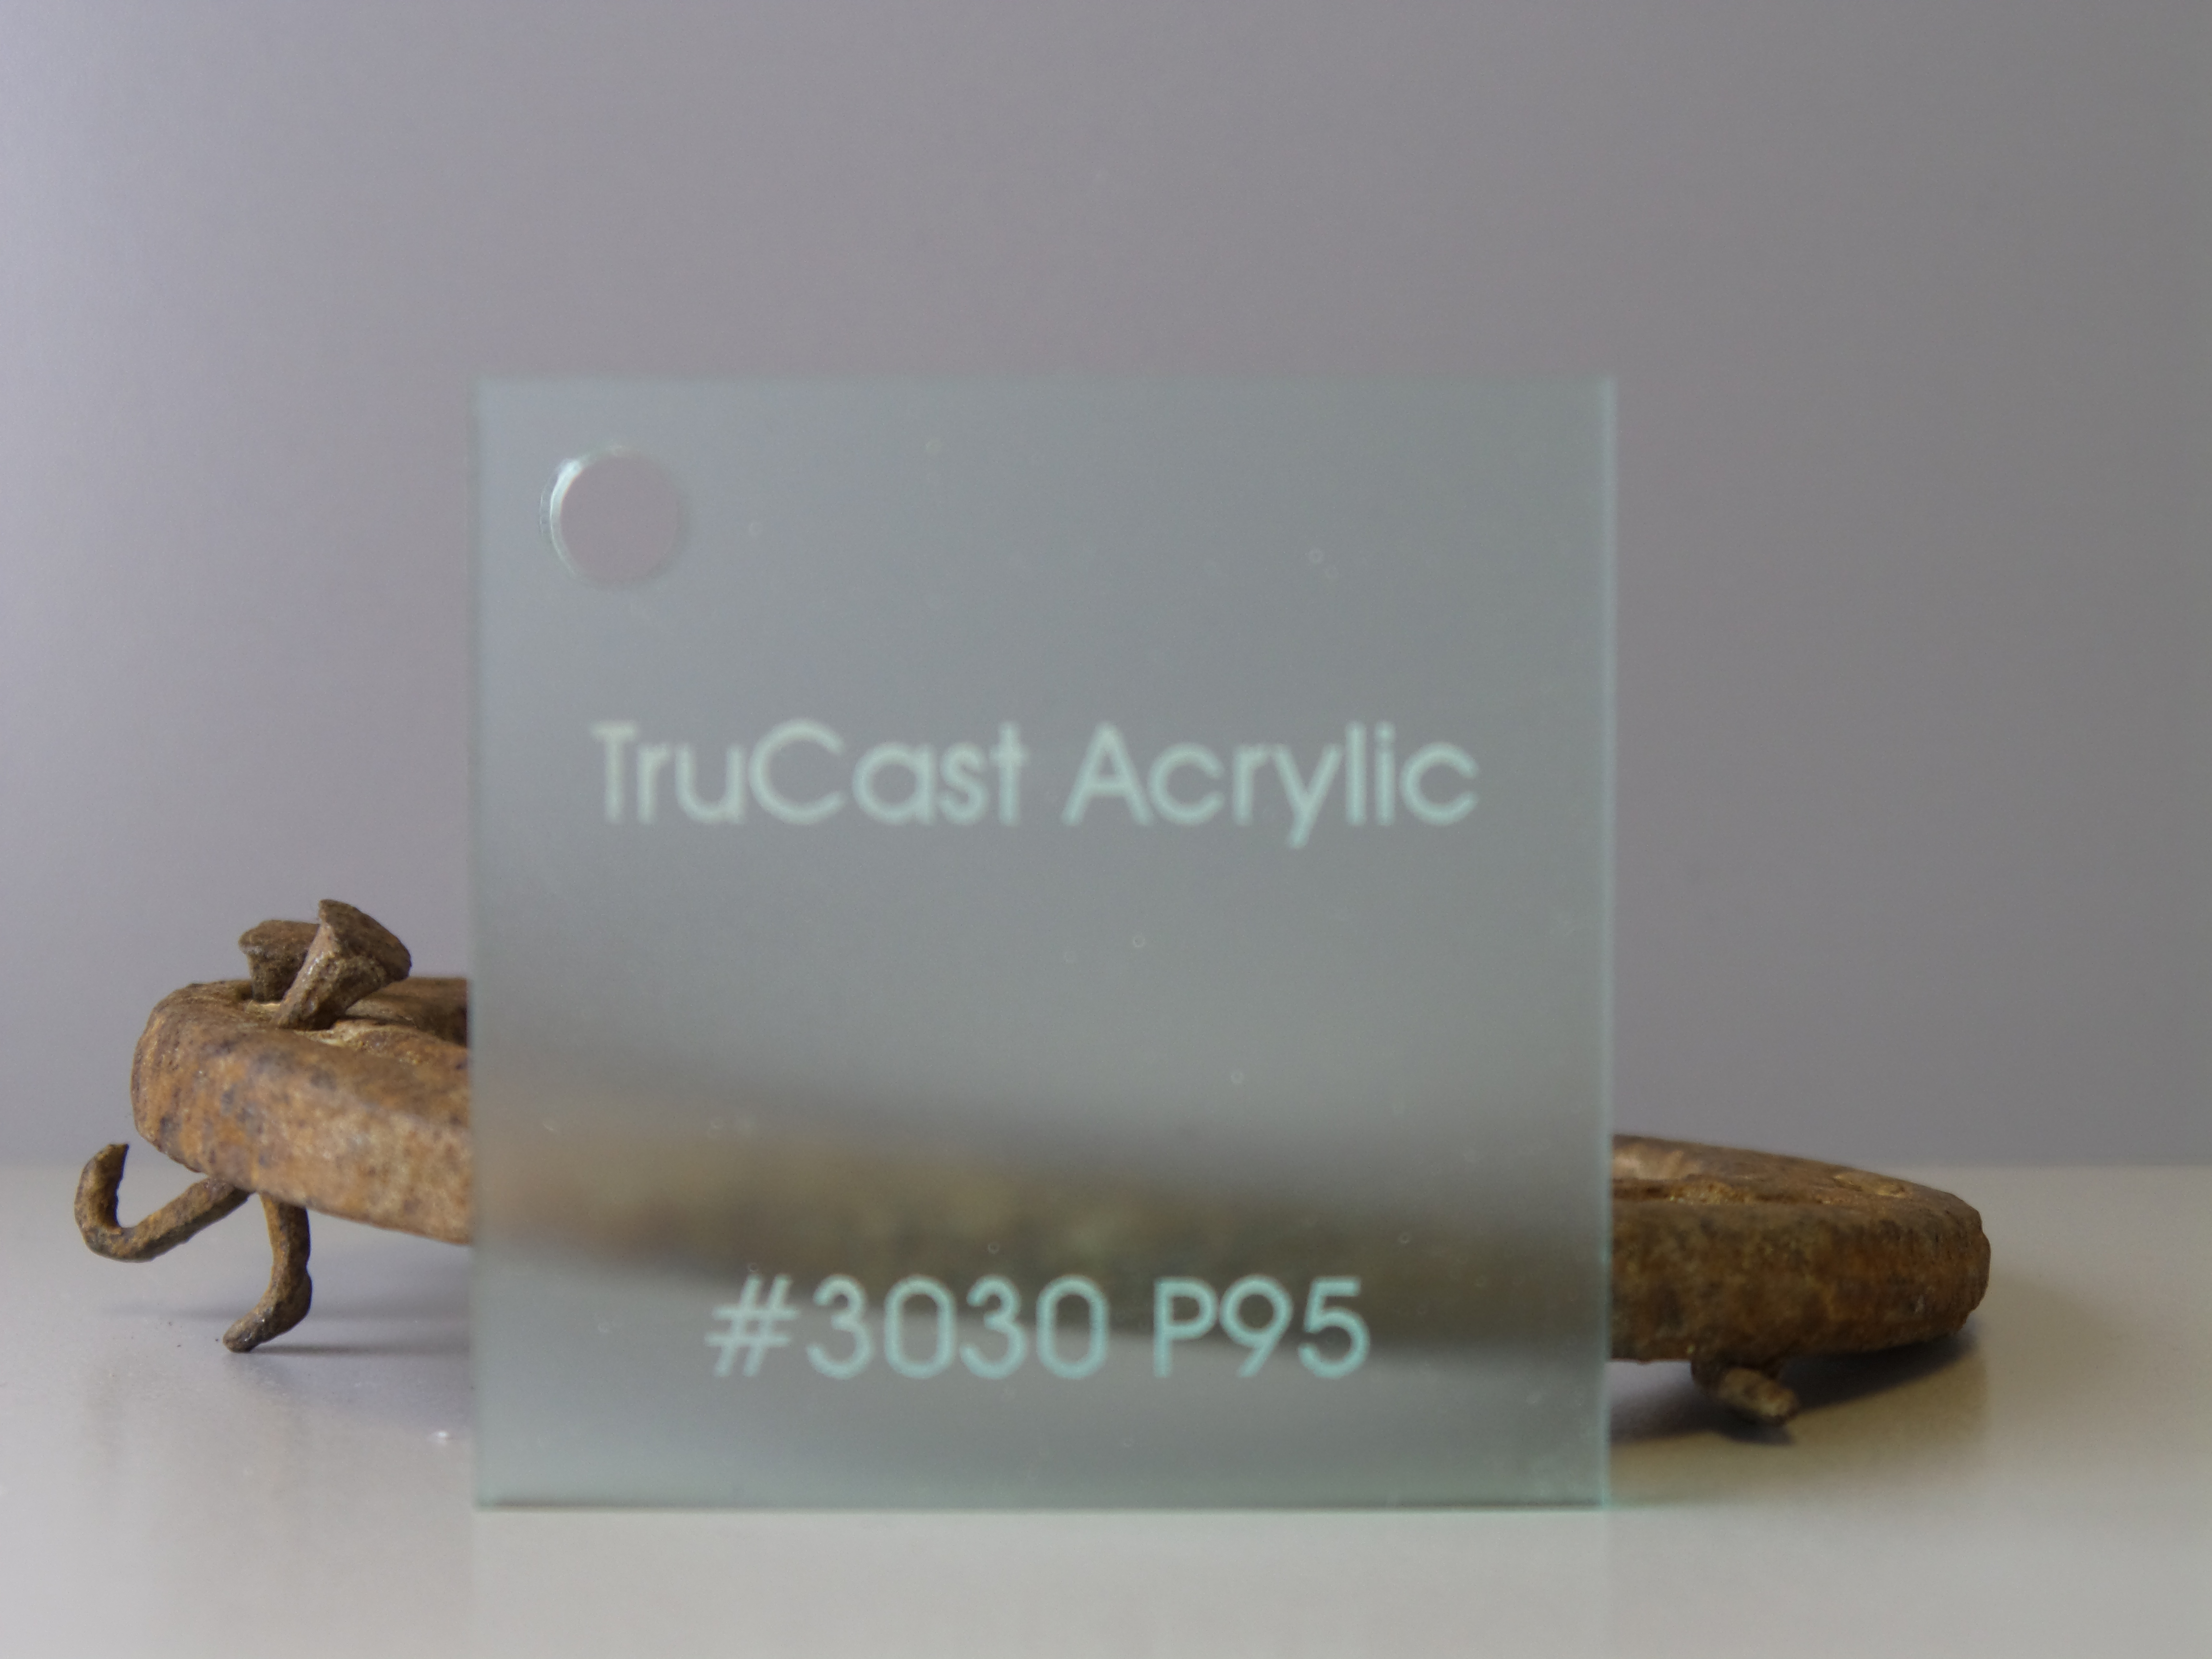 clear acrylic sheeting used for display artwork